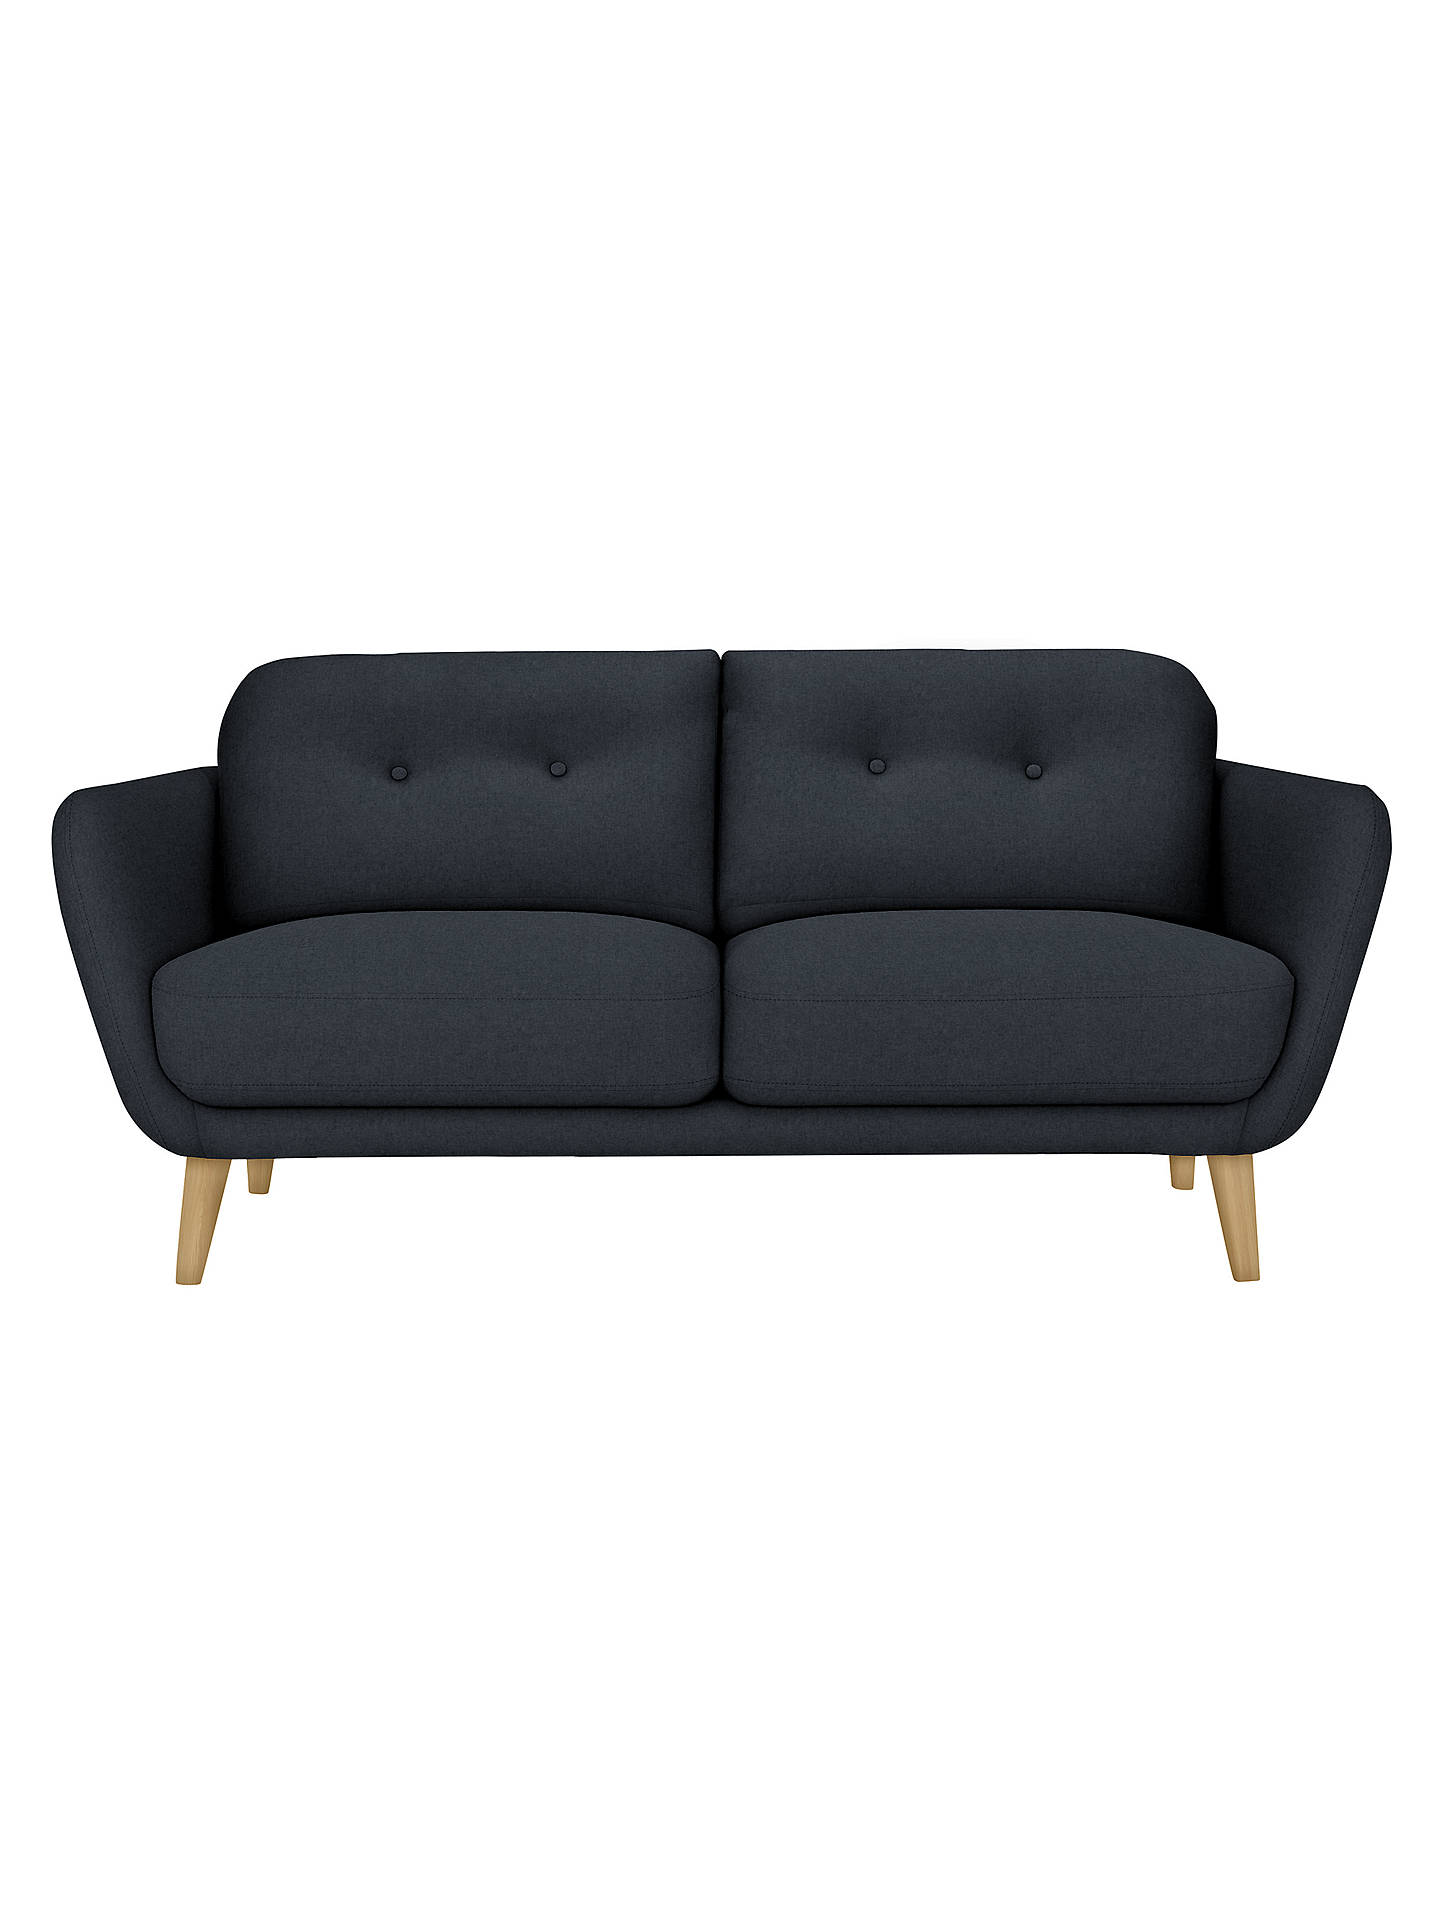 BuyHouse by John Lewis Arlo Medium 2 Seater Sofa, Light Leg, Dylan Charcoal Online at johnlewis.com